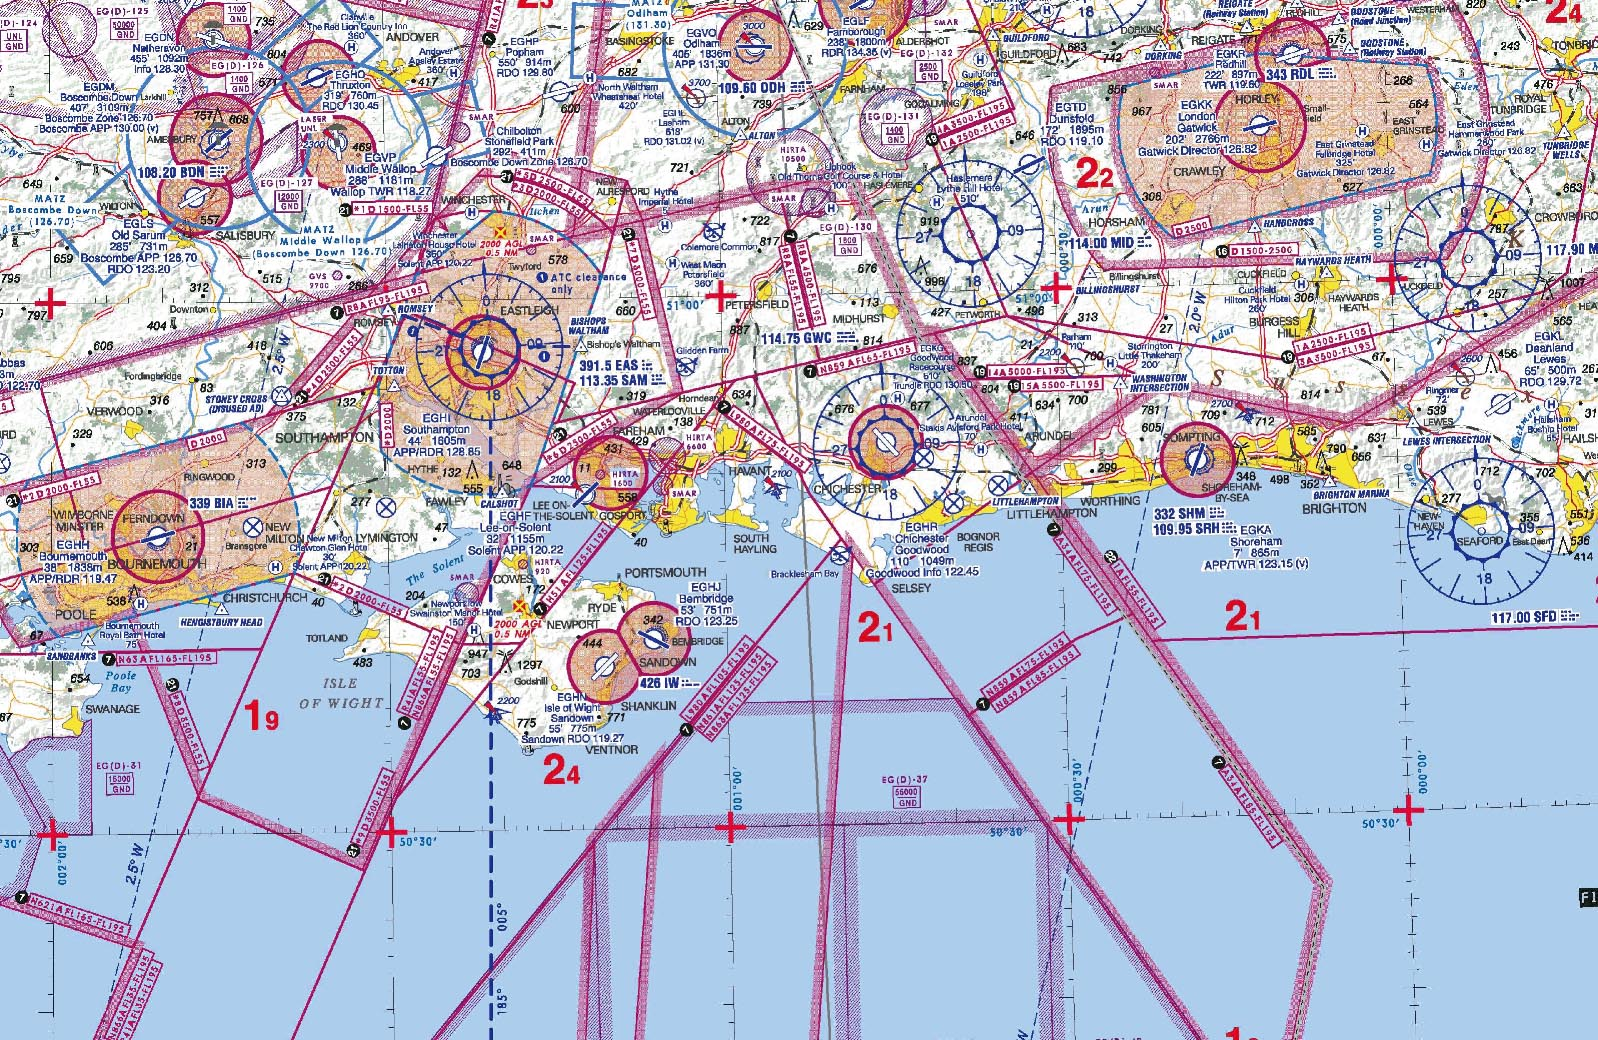 These are less than ideal as to ambiguity of airspace depictions but offer consistency and are preferable over many locally,issued charts, some of which are